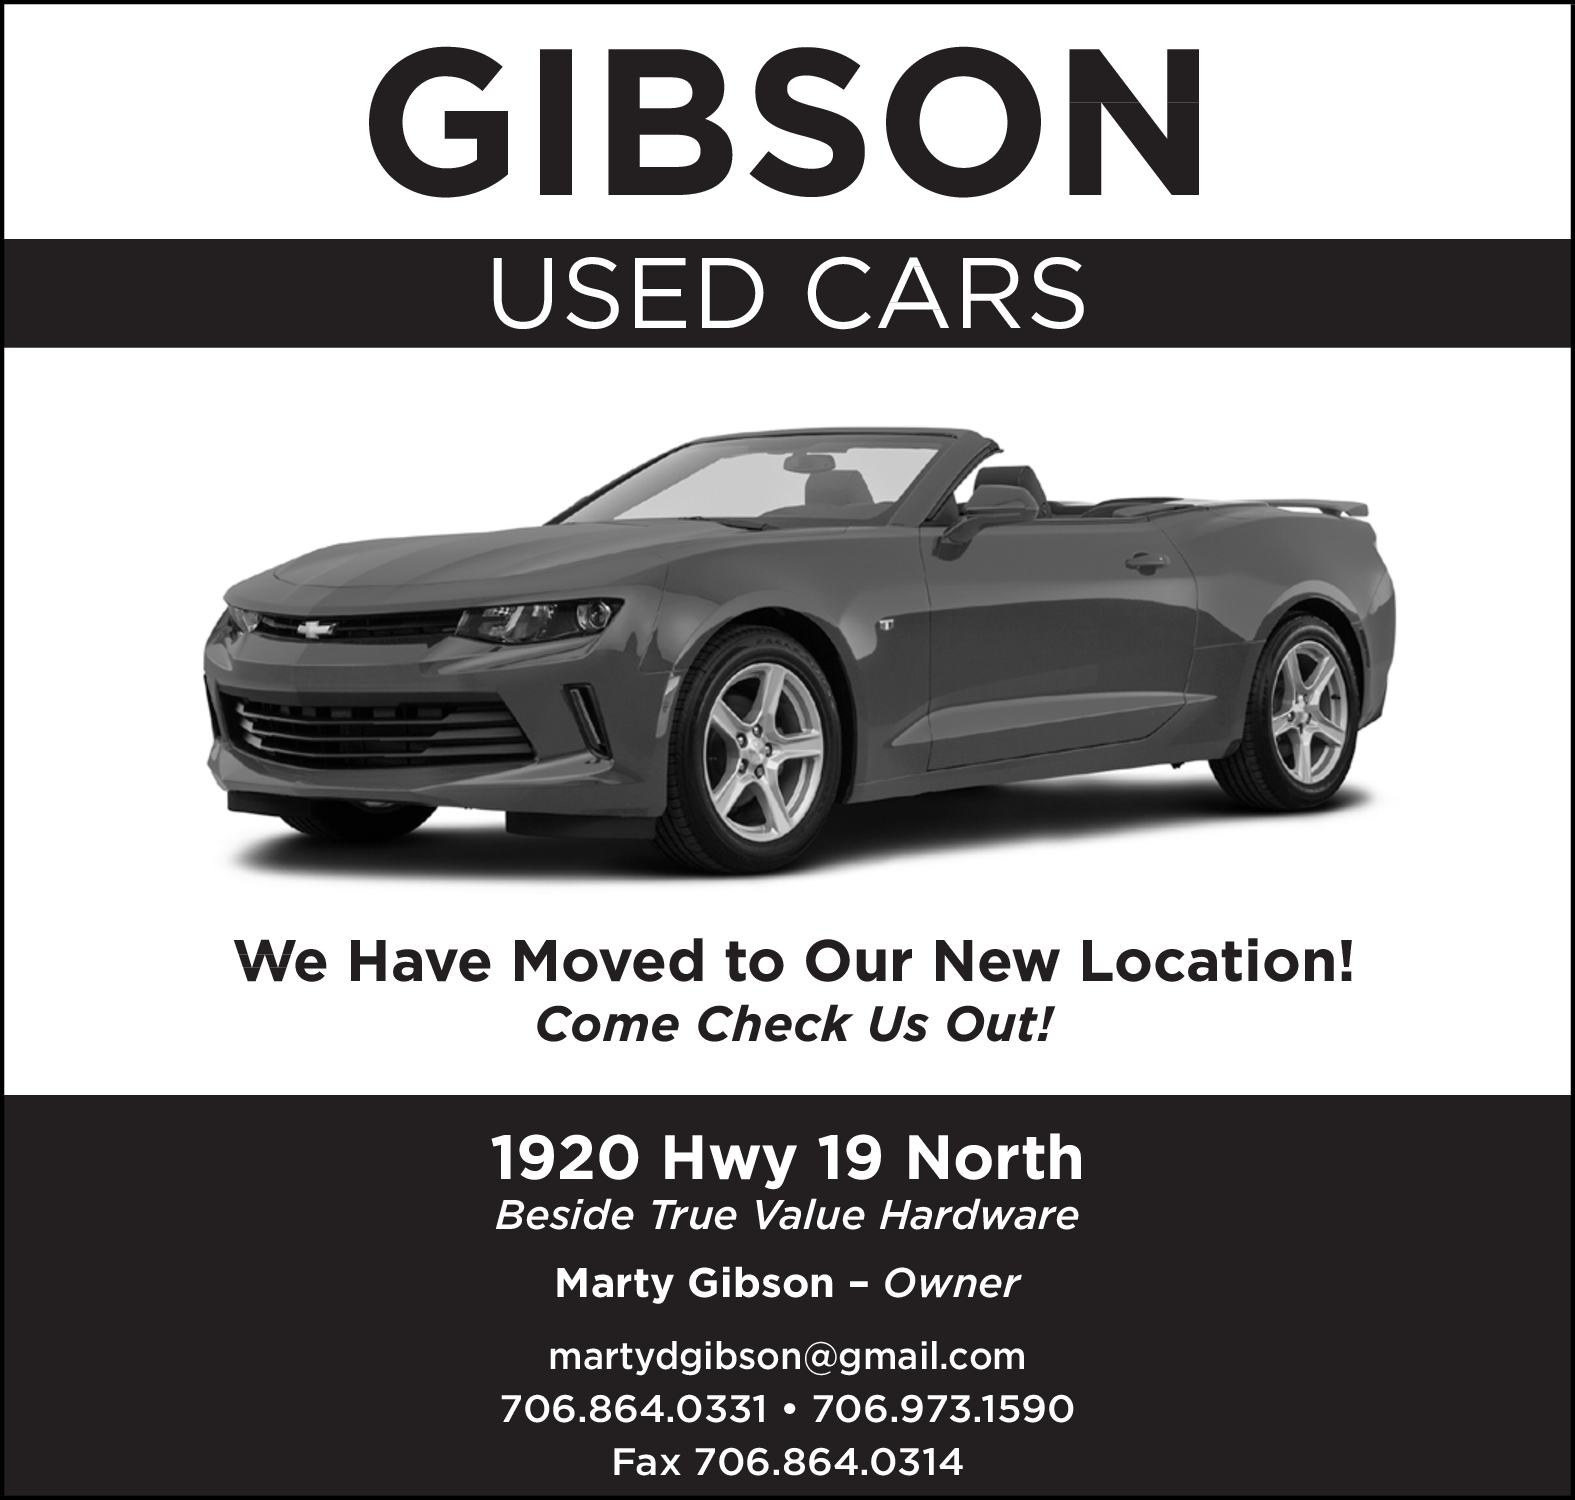 gibson used cars have moved to new location beside true value hardware at 1920 hwy 19